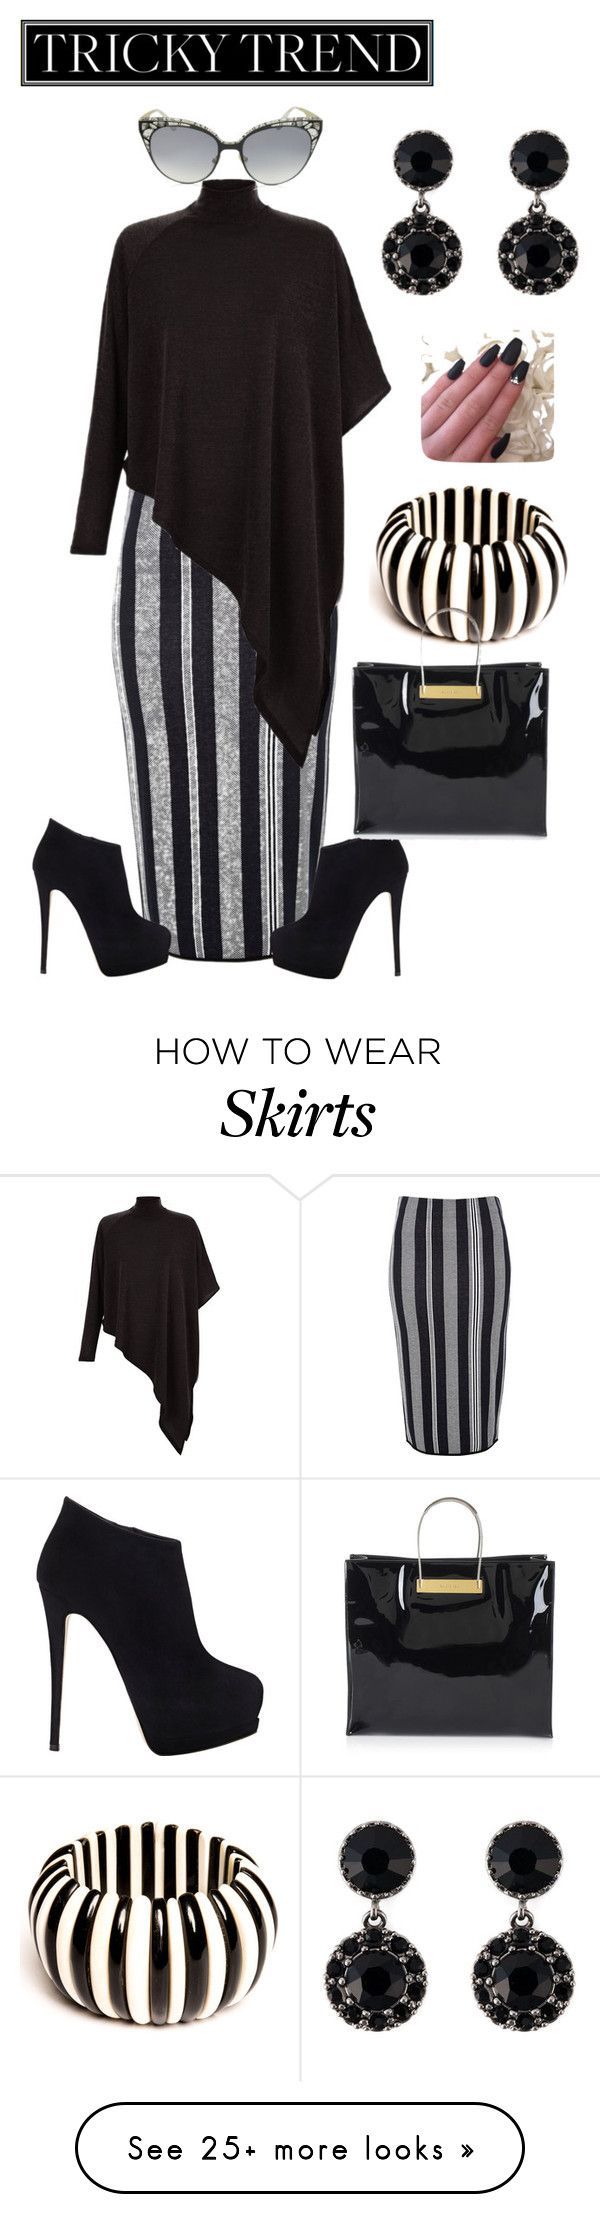 """High Neck Blouse & Pencil Skirt"" by latinavixn on Polyvore featuring River Island, AX Paris, Giuseppe Zanotti, Jimmy Choo, Balenciaga, Givenchy, women's clothing, women's fashion, women and female"